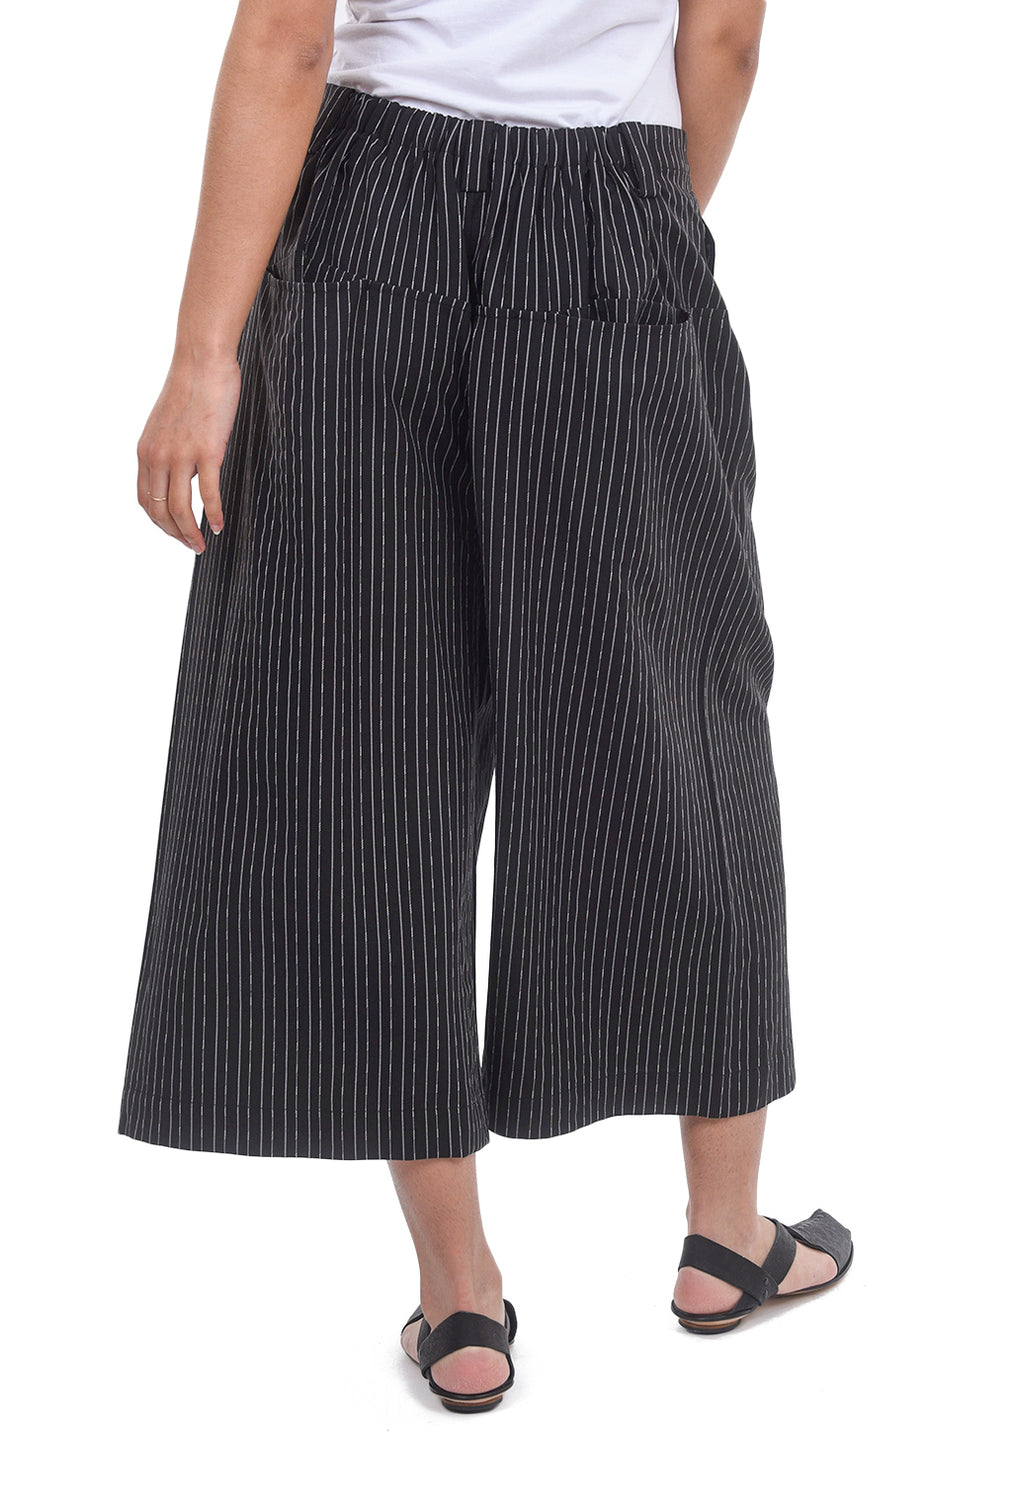 Moyuru Banker Stripe ER Pants, Black